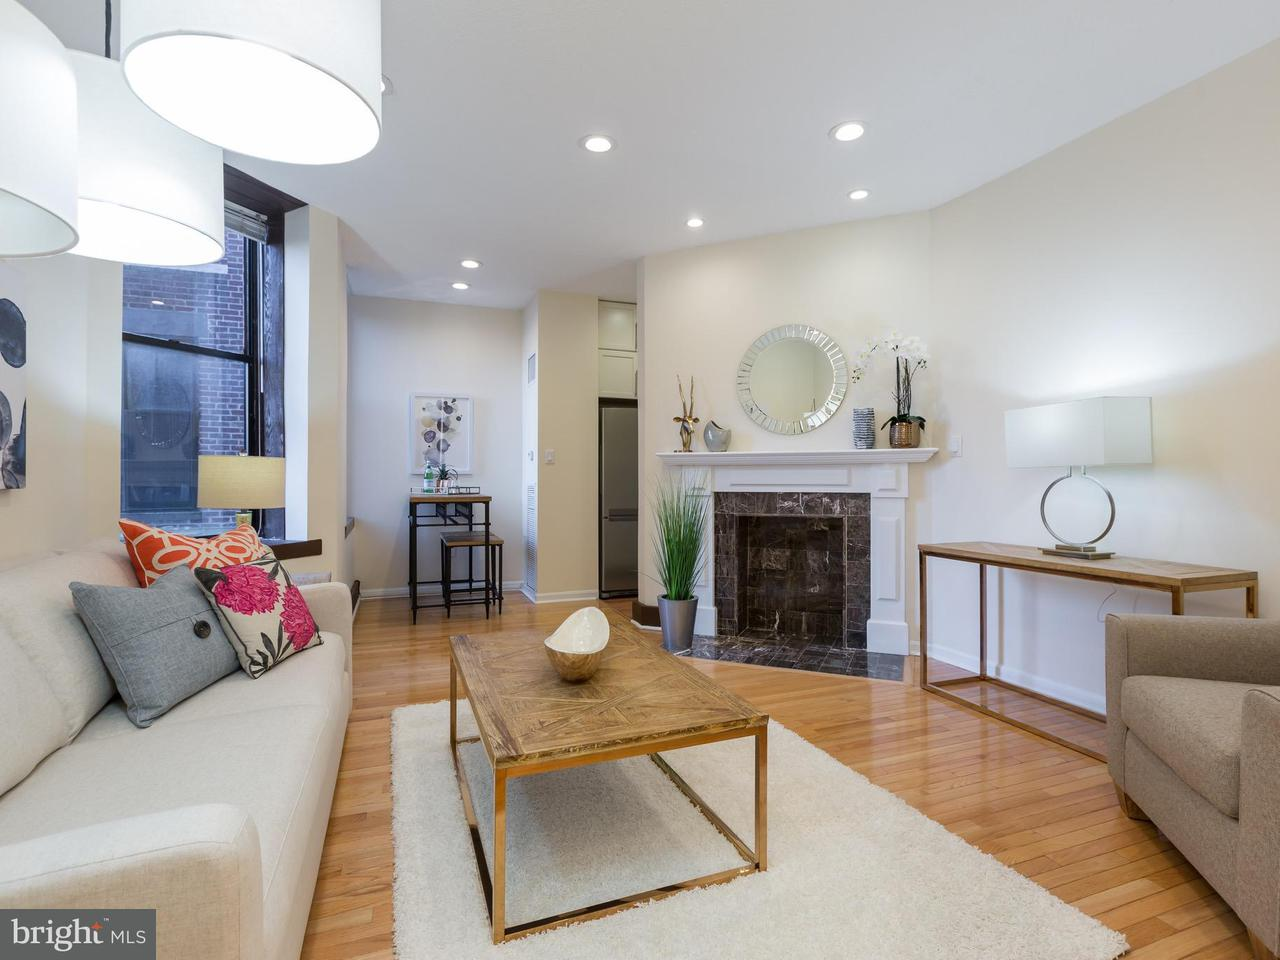 Condominium for Sale at 1615 Q St NW #207 Washington, District Of Columbia 20009 United States